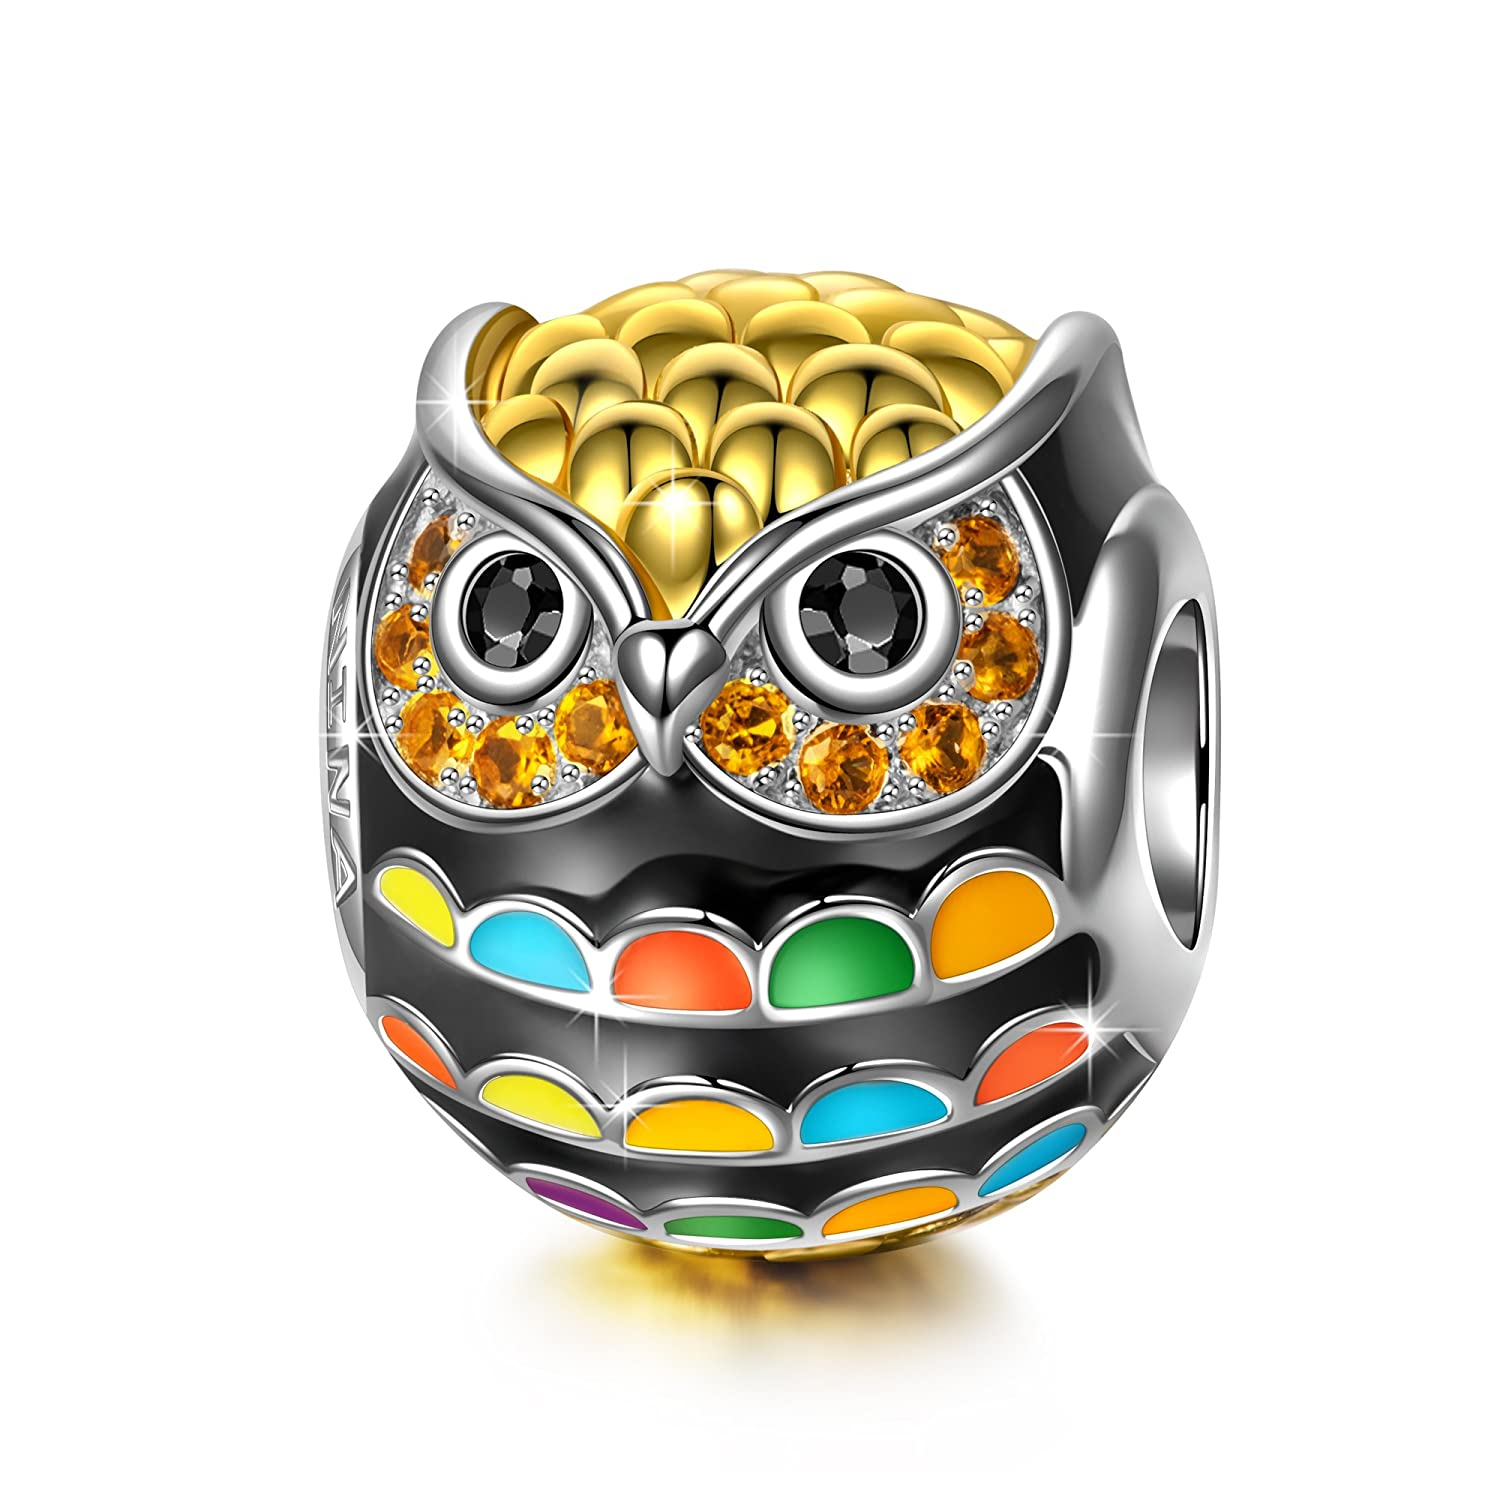 a91d8e528 NinaQueen Charm -Wise as Owls- 925 Sterling Silver Gold Plated Animal  Lovers Charms ♥with Freebie-B0199JSN1K and this Multicolor Enamel Bead in  Cart, ...